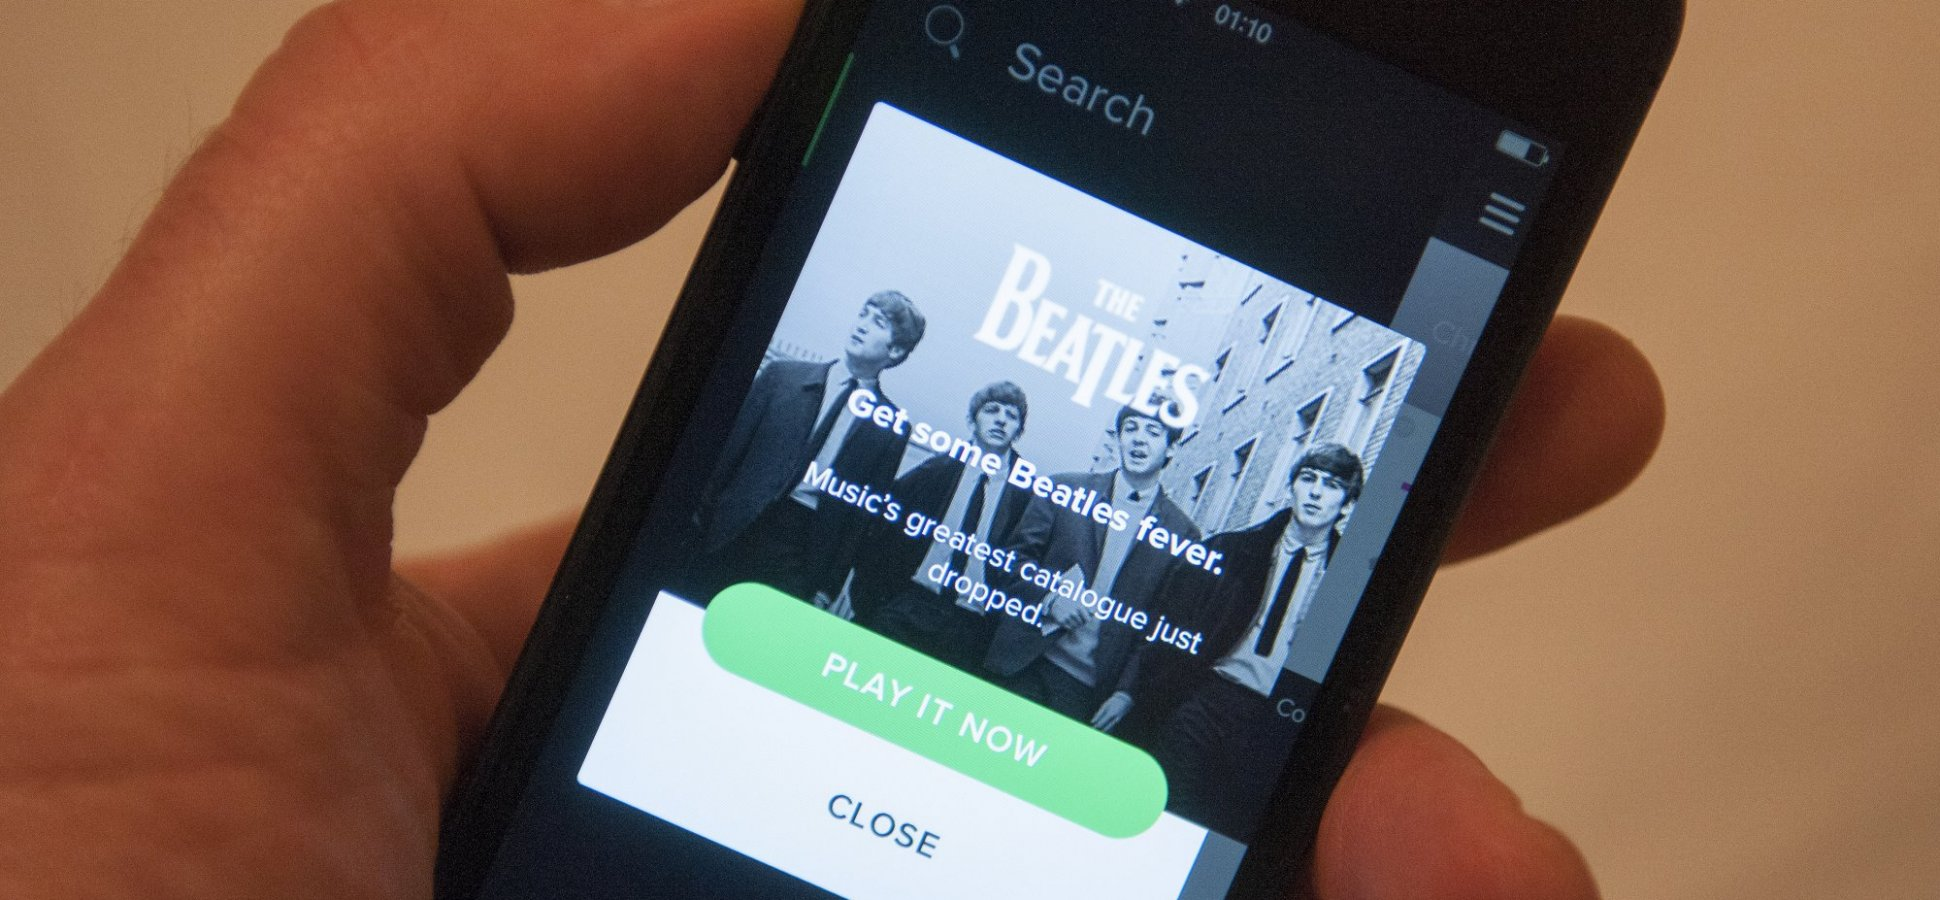 Music Streaming Service Spotify Files for Its IPO, According to Reports